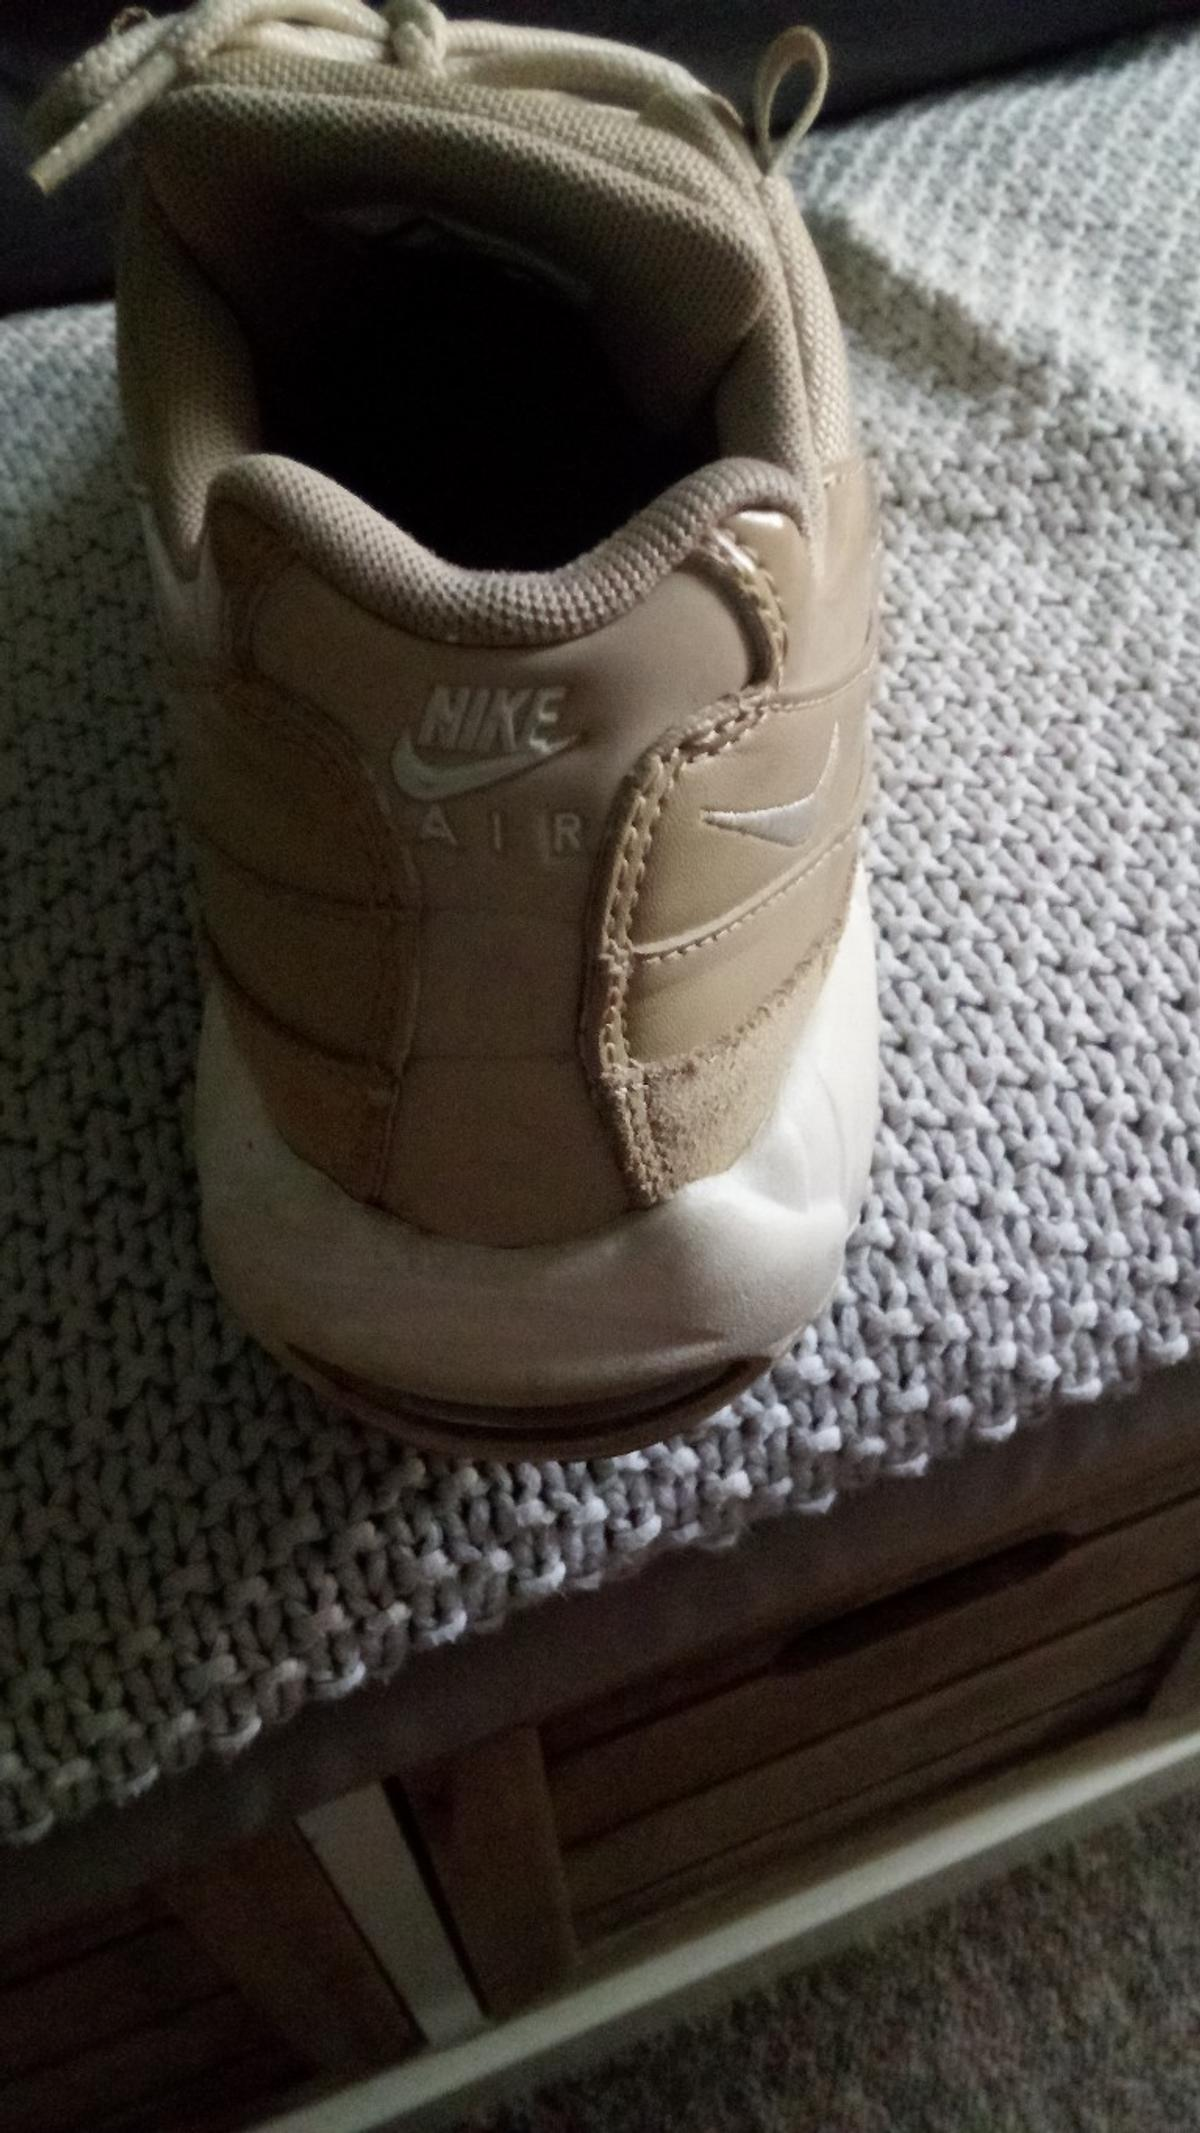 best service d3a5c 92cf2 nike air max 120s? rose gold size 7 in PO2 Portsmouth for ...